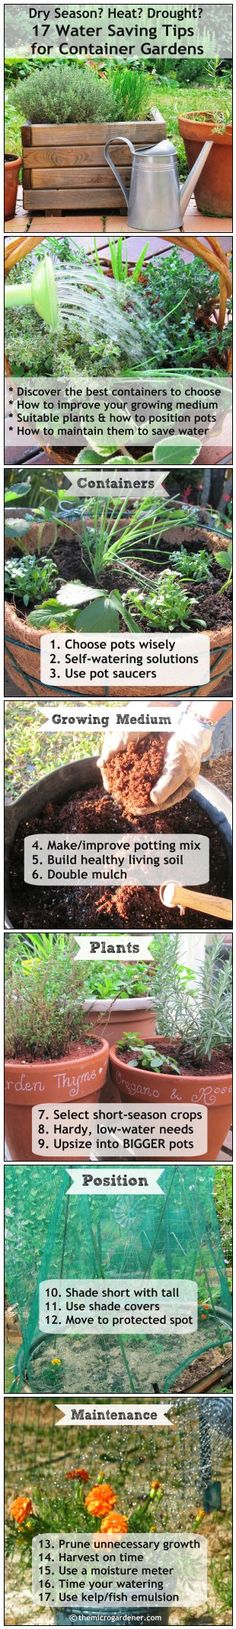 ac472f521dac8cfba853592076ac10f9 - What Type Plants Are Suitable For Micro Gardening